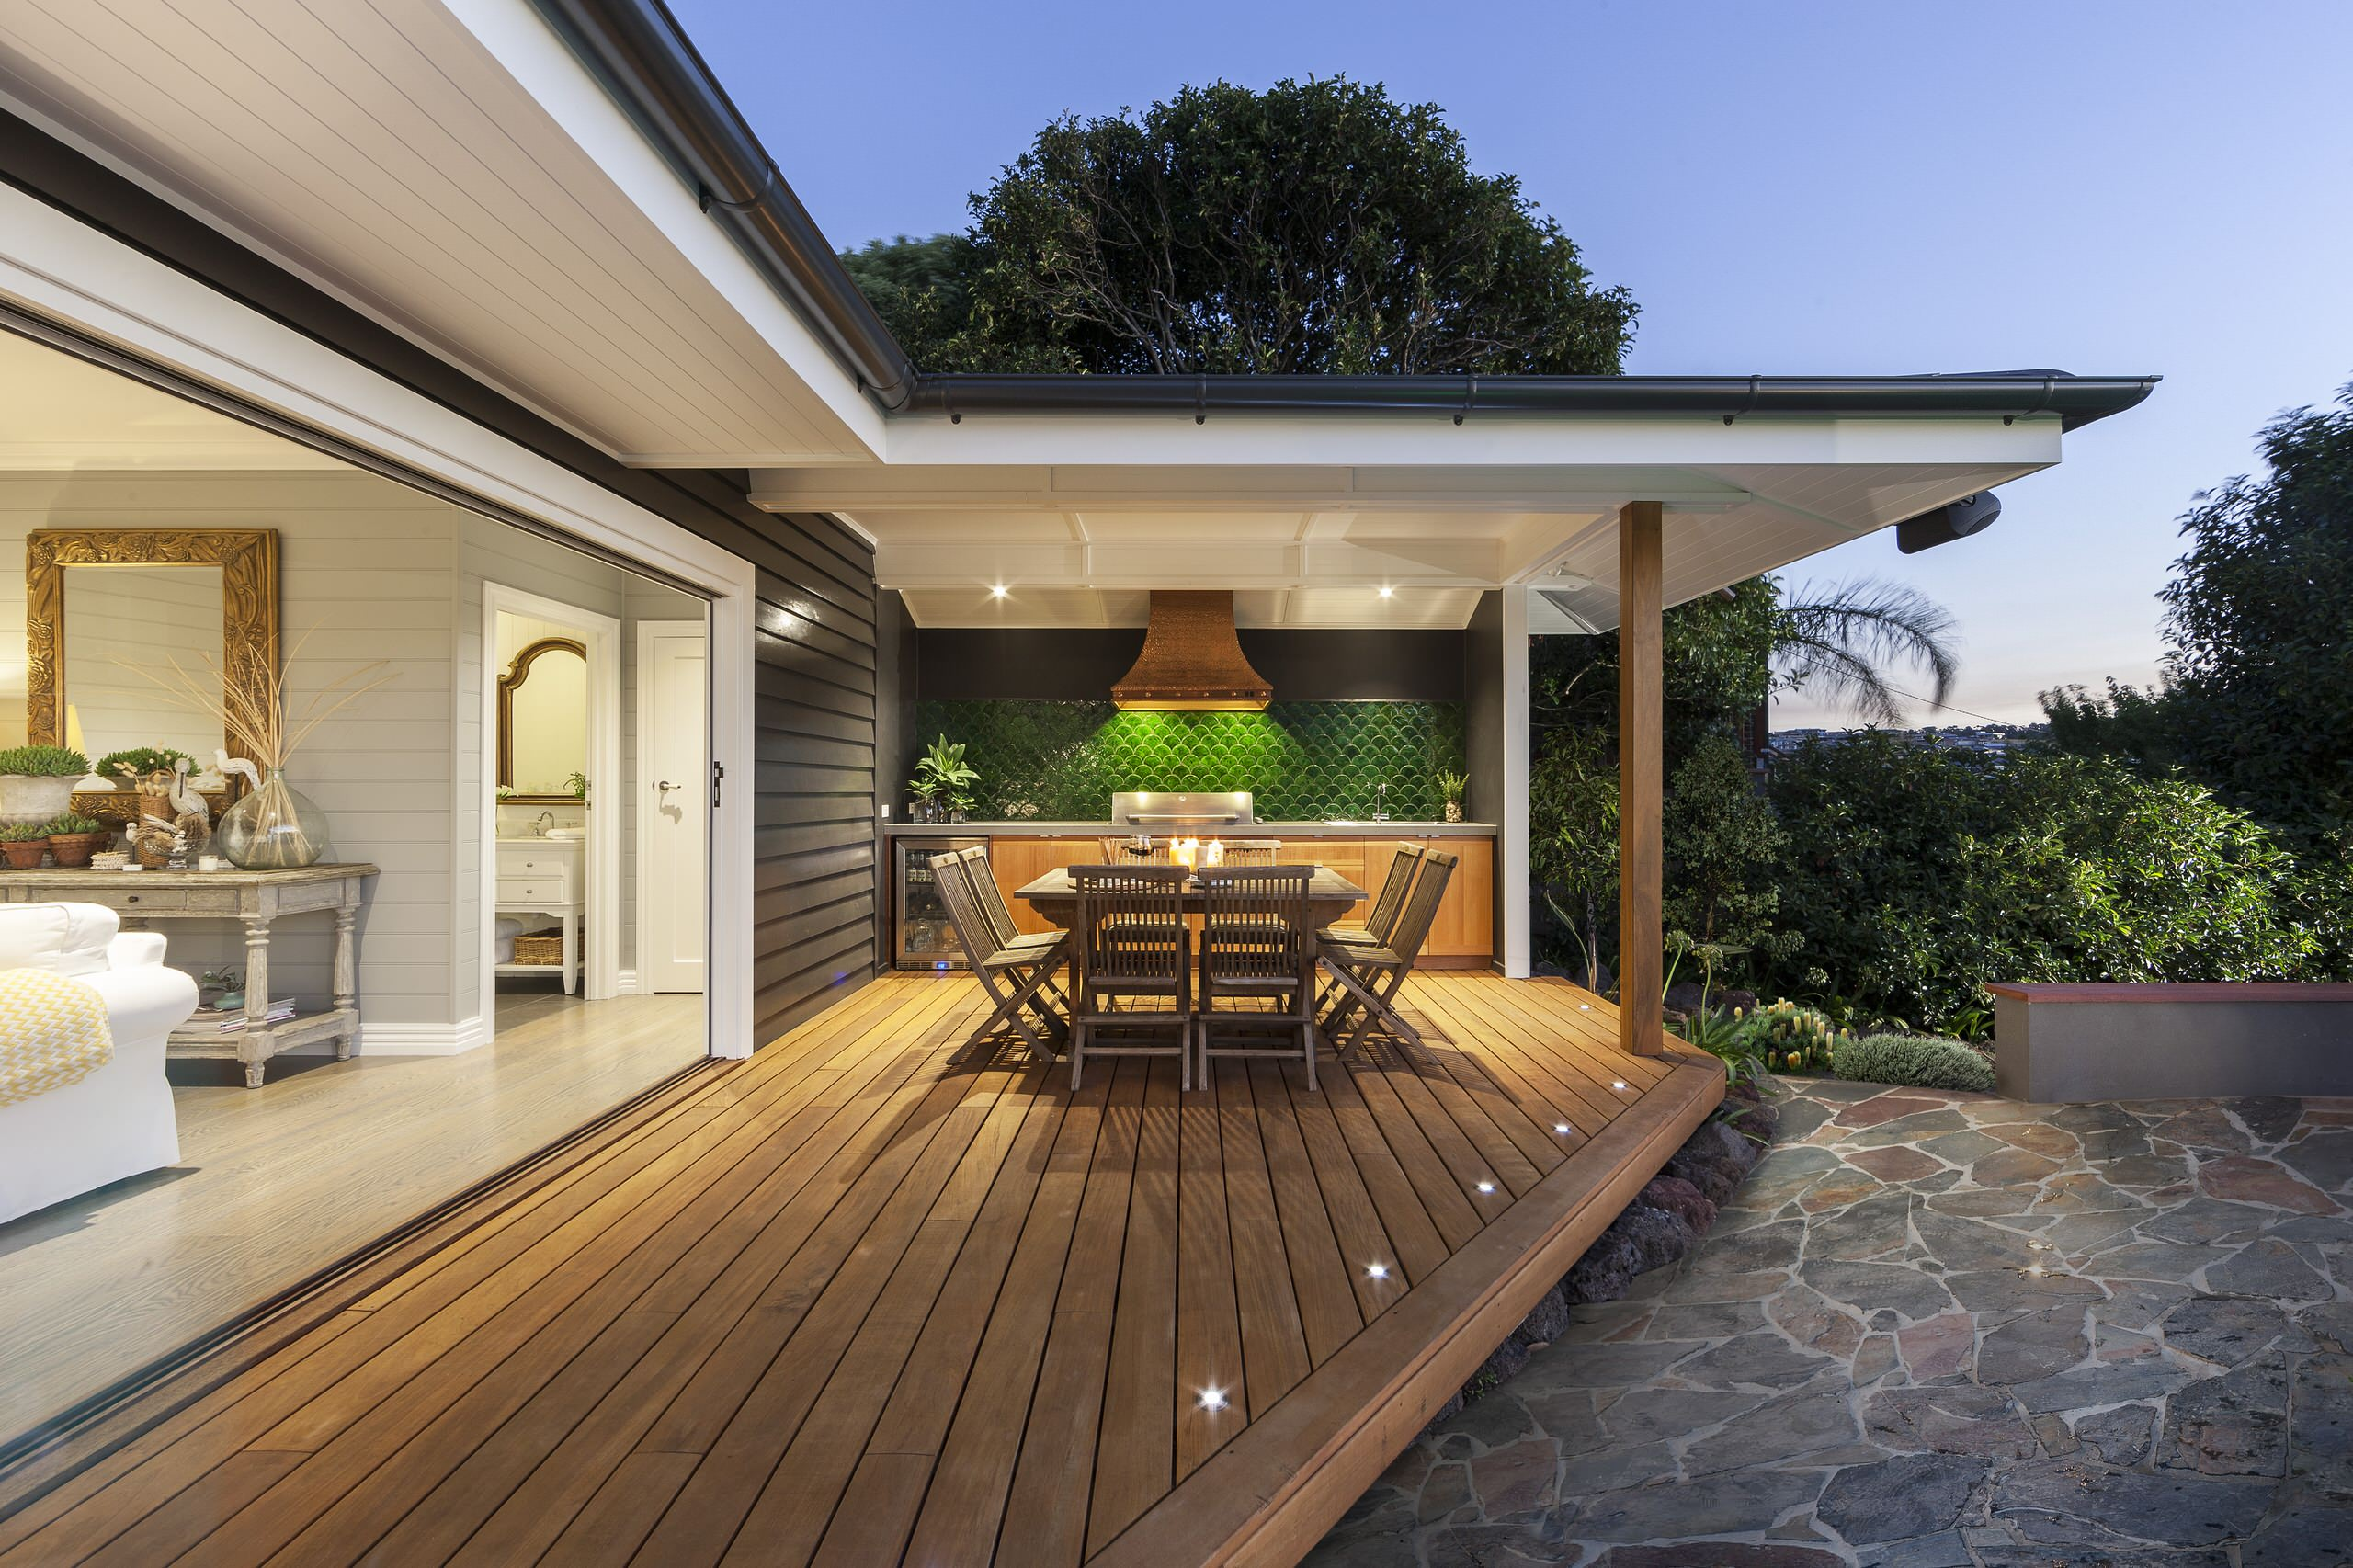 Decorating Bi Fold Windows And Covered Deck For Outdoor Kitchen